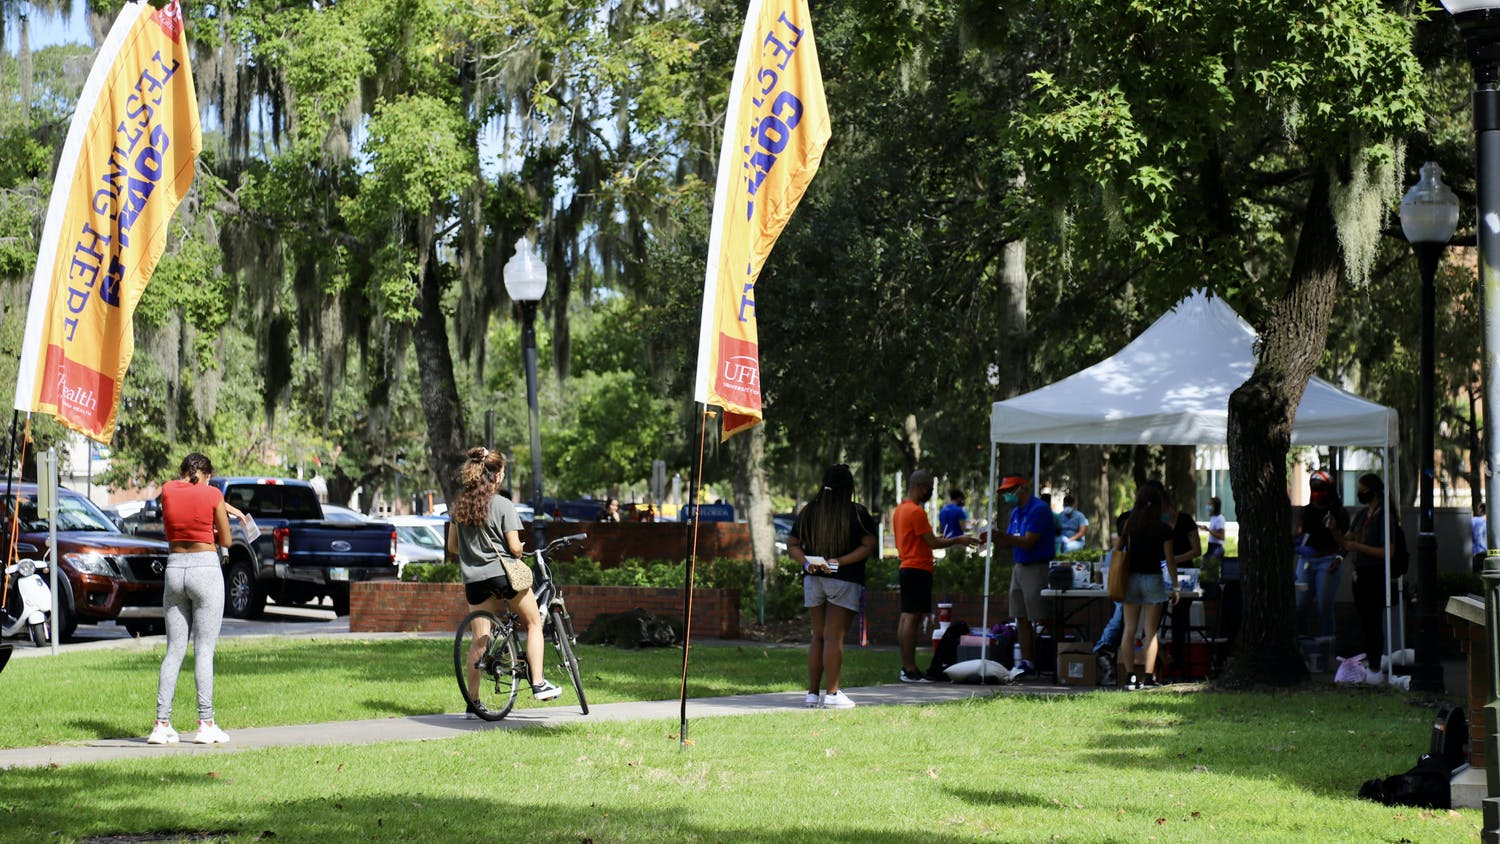 Students are seen waiting in line to be tested at the COVID-19 testing site outside of Murphee Hall on Sept. 24, 2020. Students who wish to get tested are required to fill out an online screening questionnare prior to making an appointment and are asked to bring their Gator One ID card.